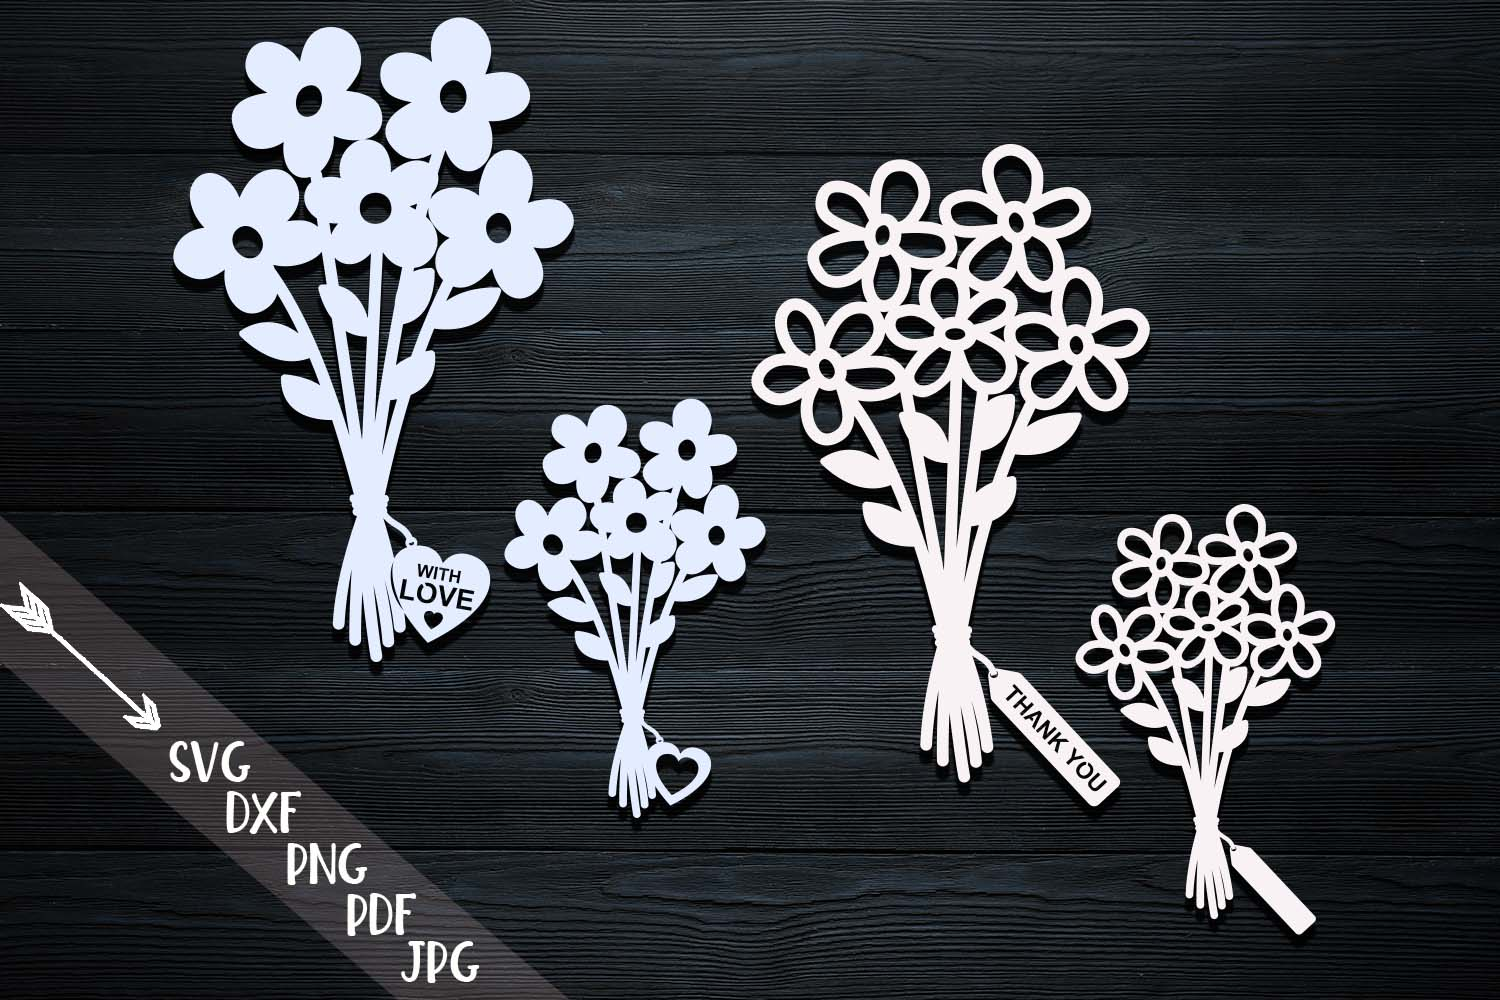 Flowers Bouquets with Tags SVG File